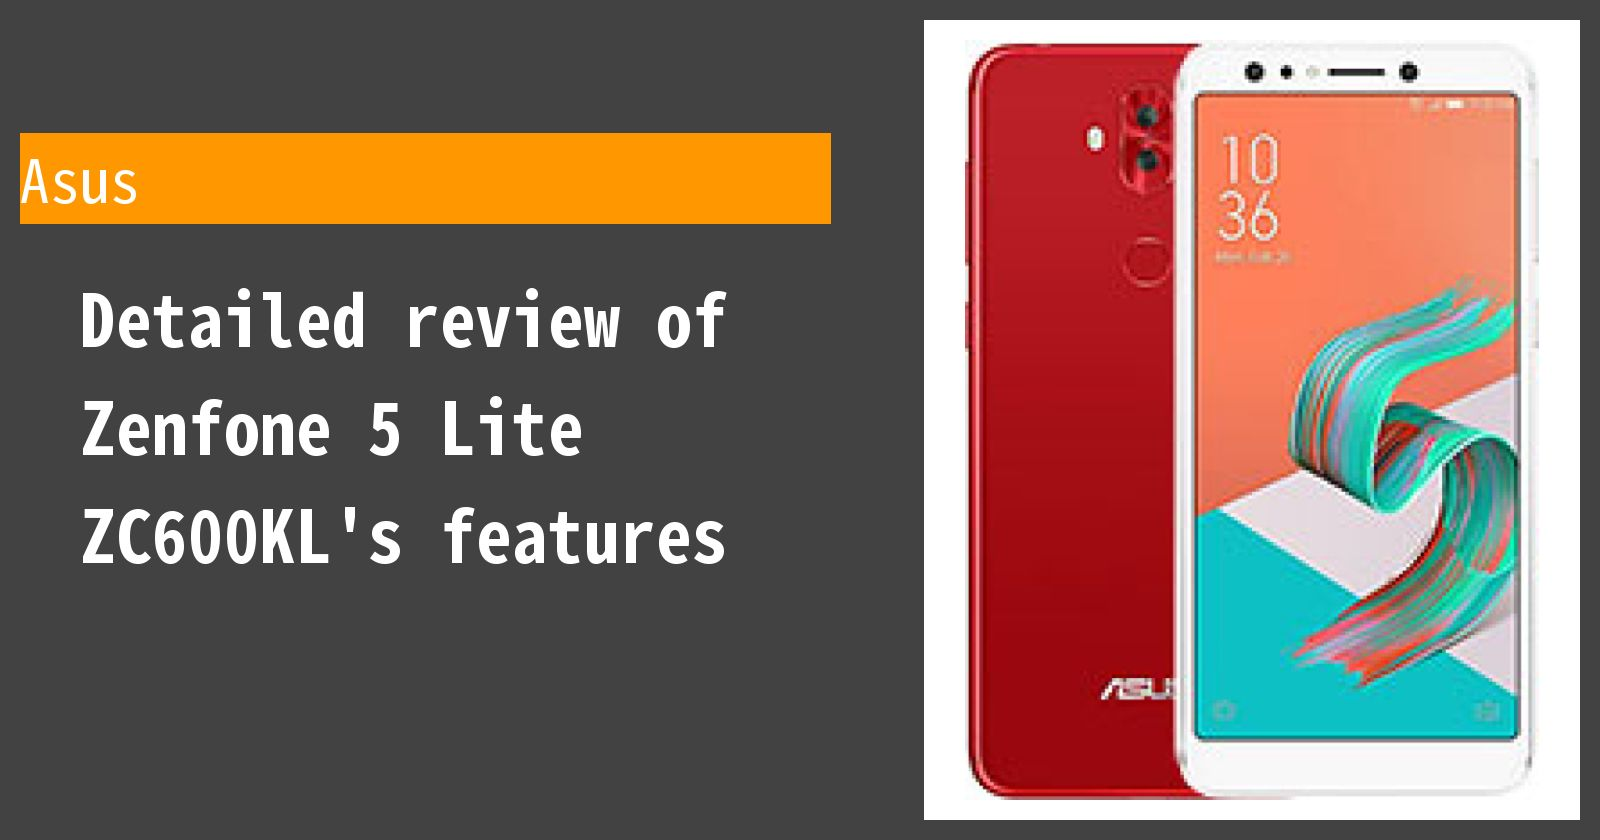 Detailed review of Zenfone 5 Lite ZC600KL's features